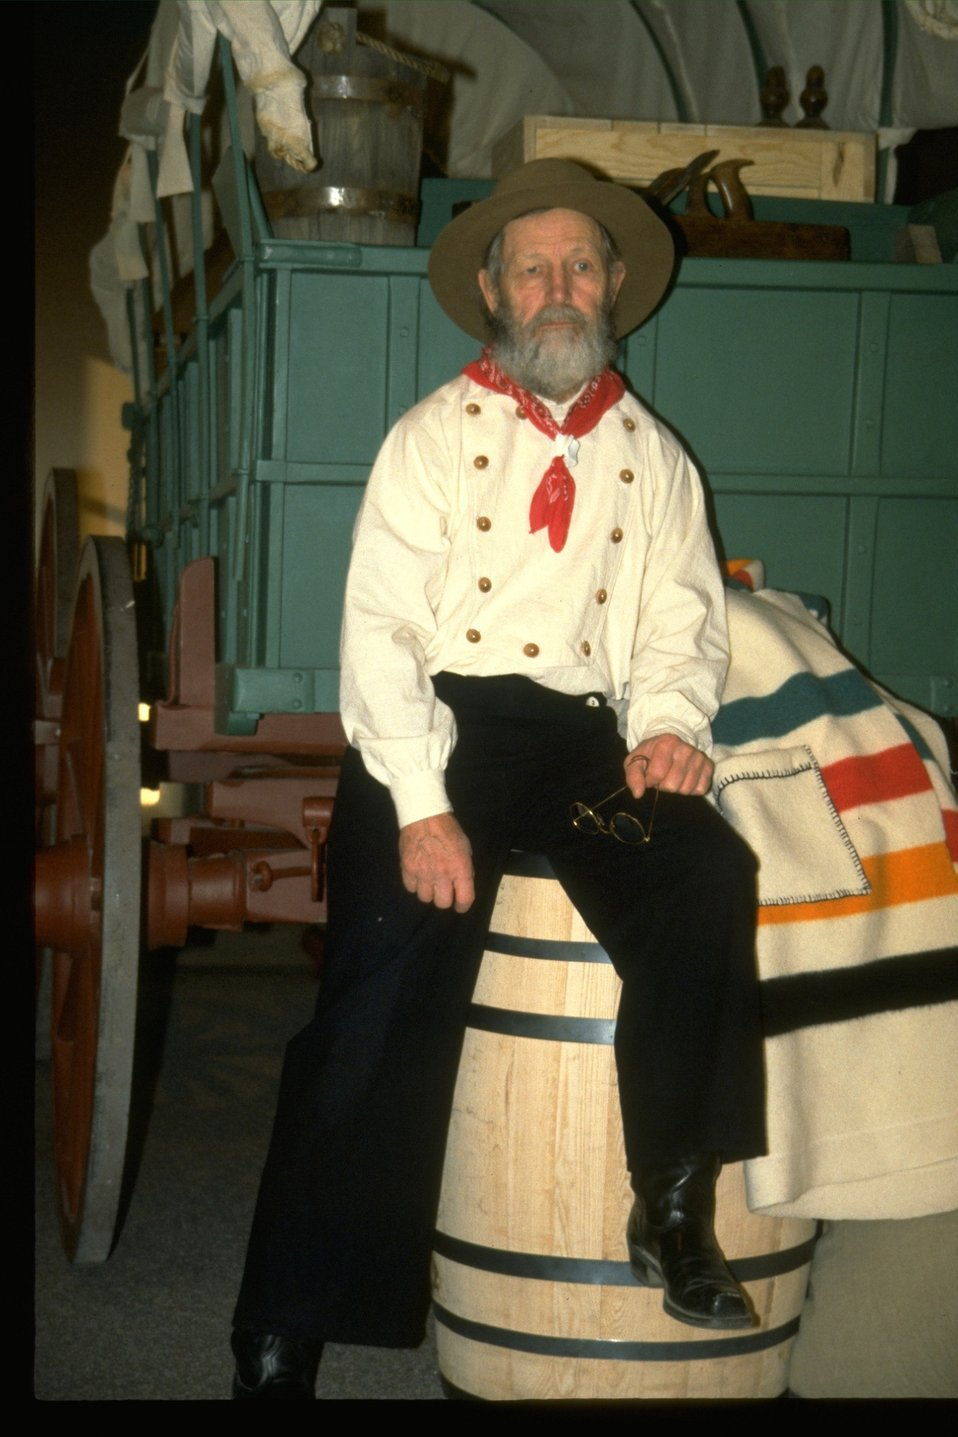 George Johnson in costume for performance at the NHOTIC.